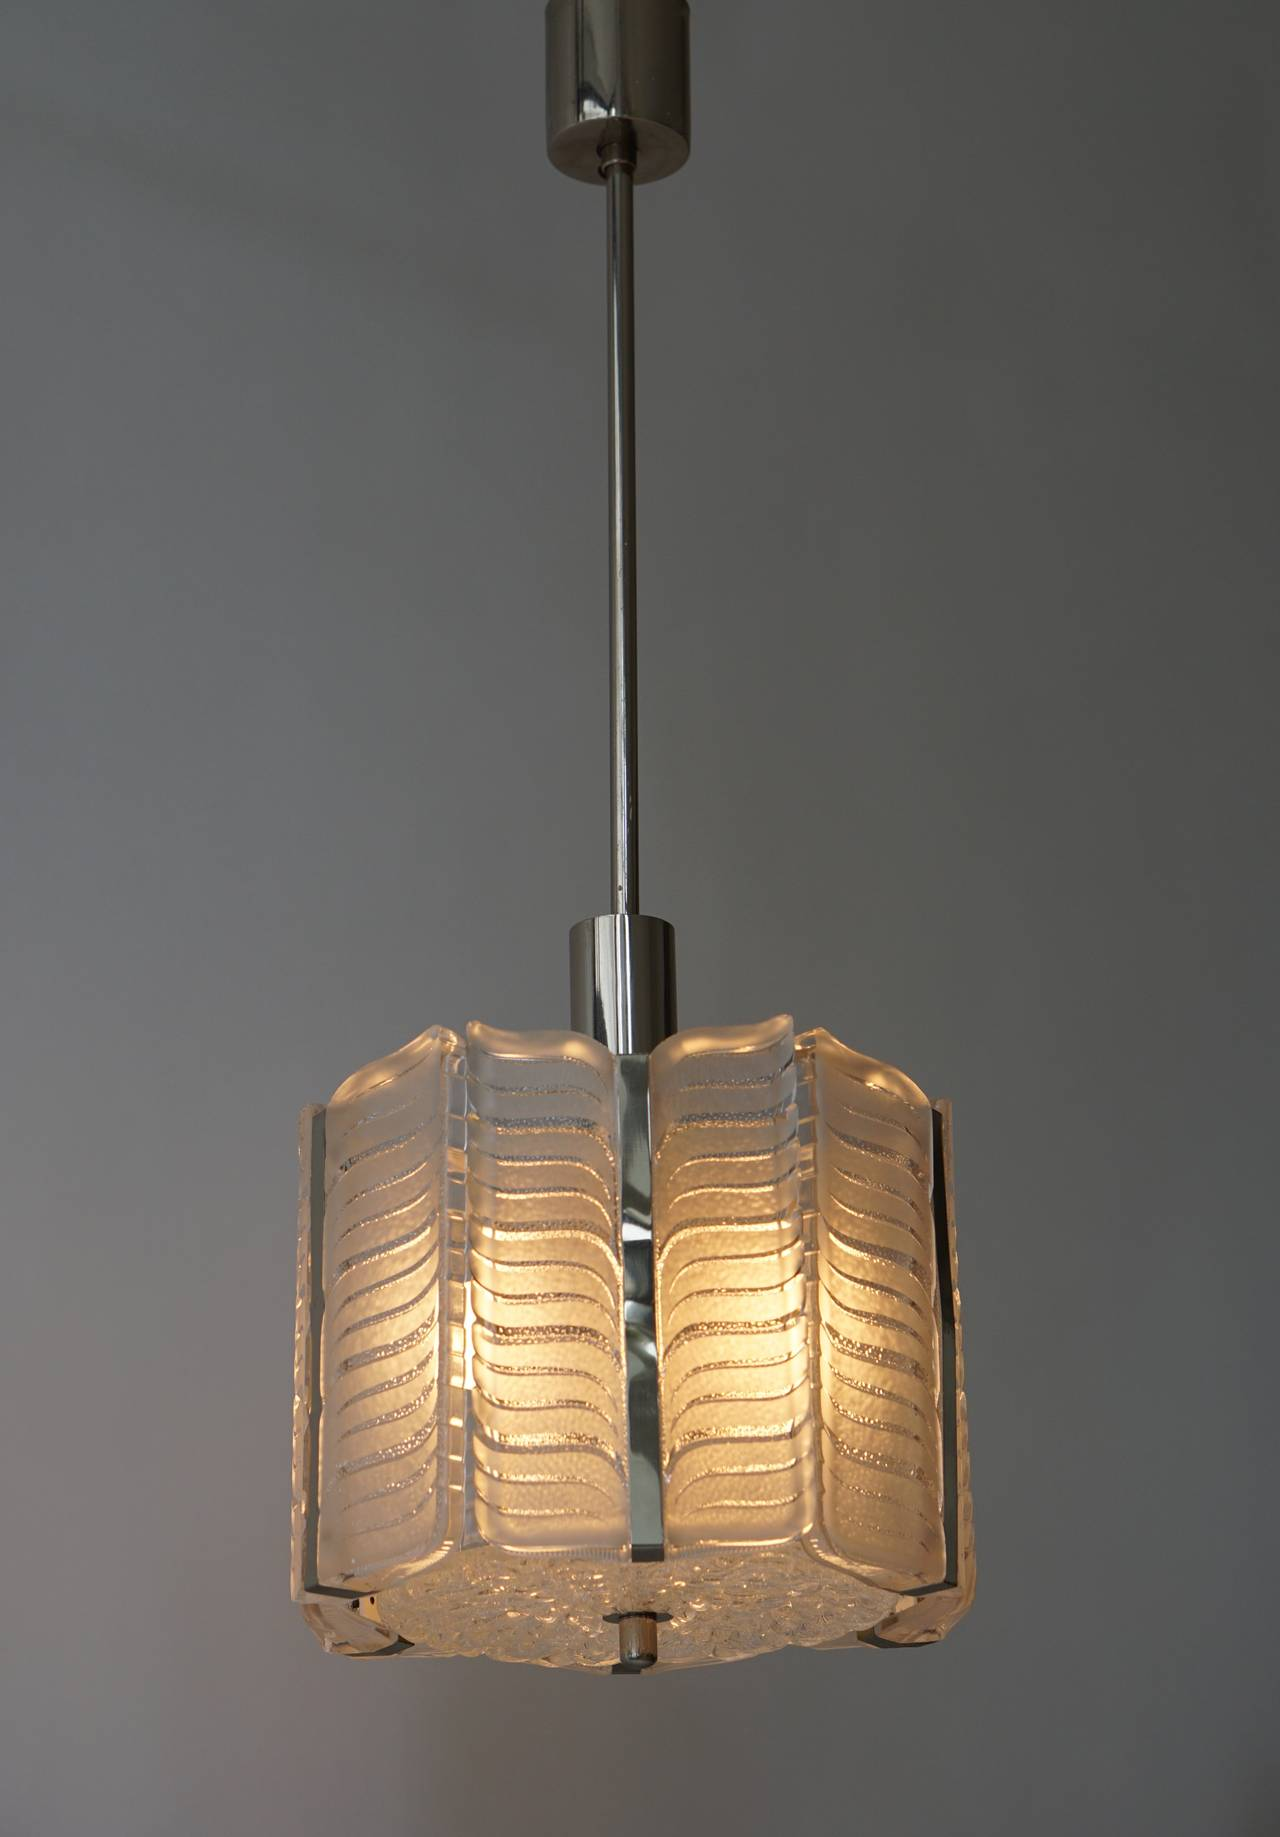 20th Century Italian Murano Glass Pendant Light For Sale